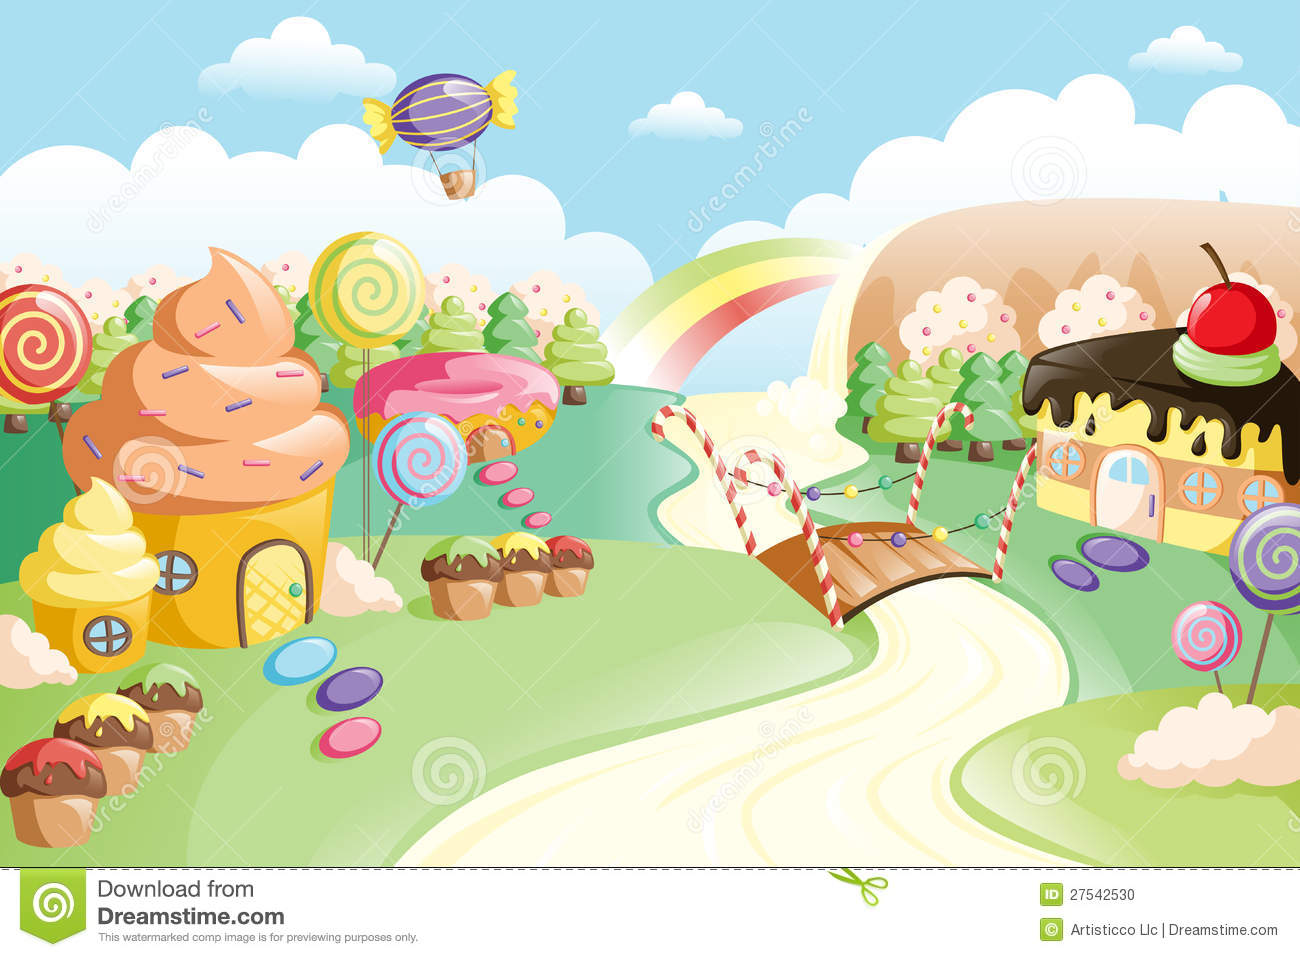 Fantasy Sweet Food Land Stock Photo - Image: 27542530